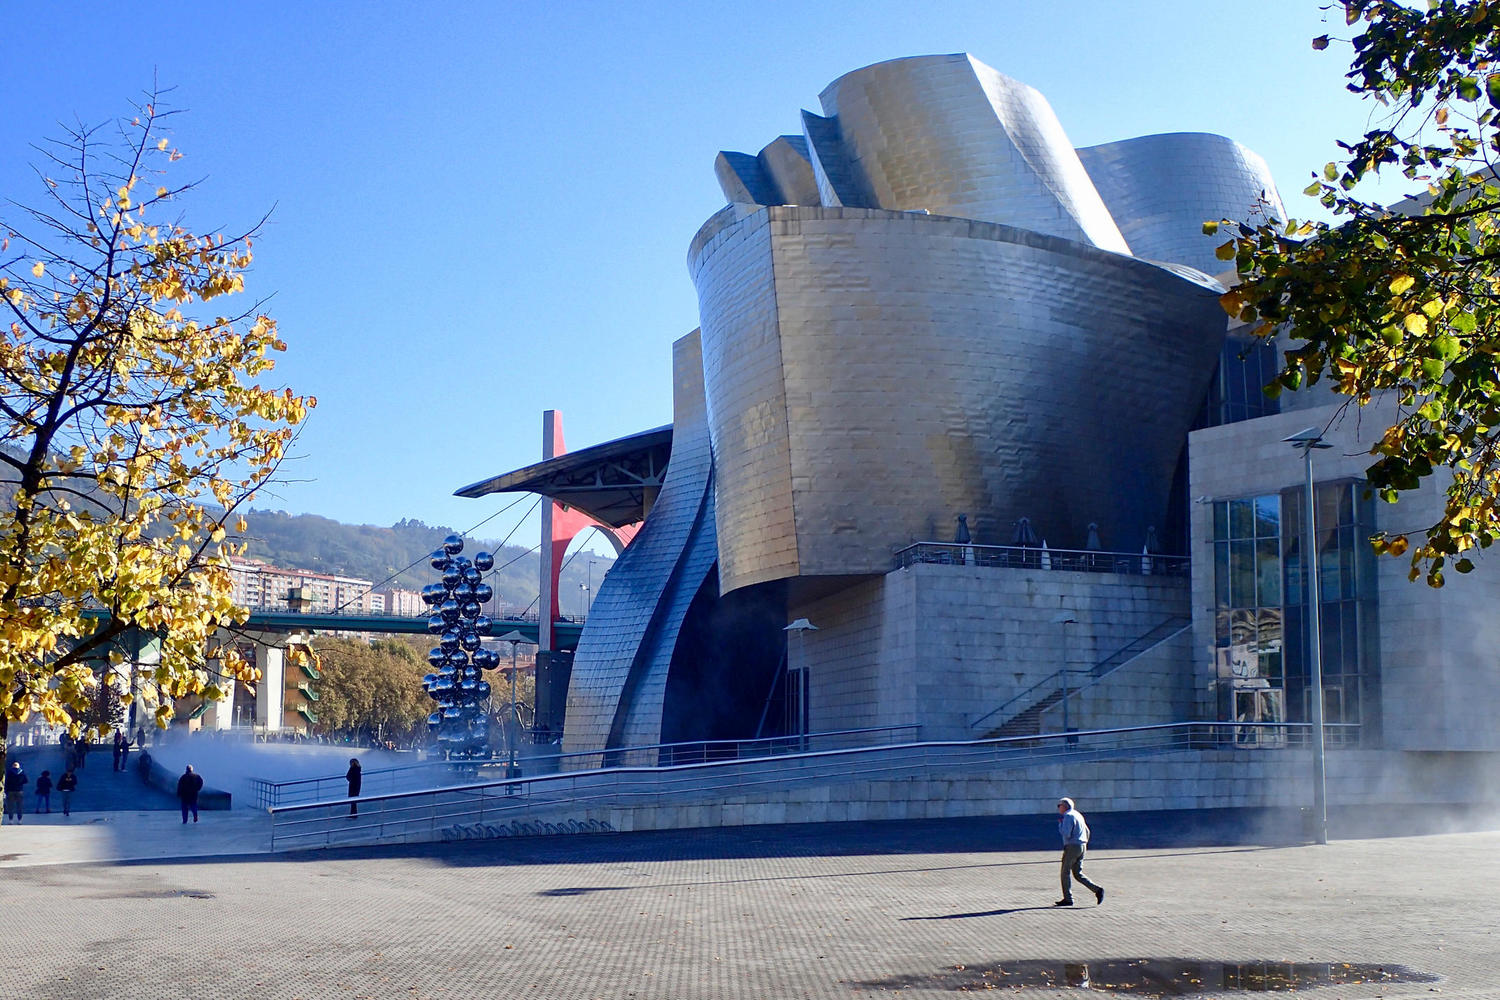 Standing outside the infamous Guggenheim in Bilbao